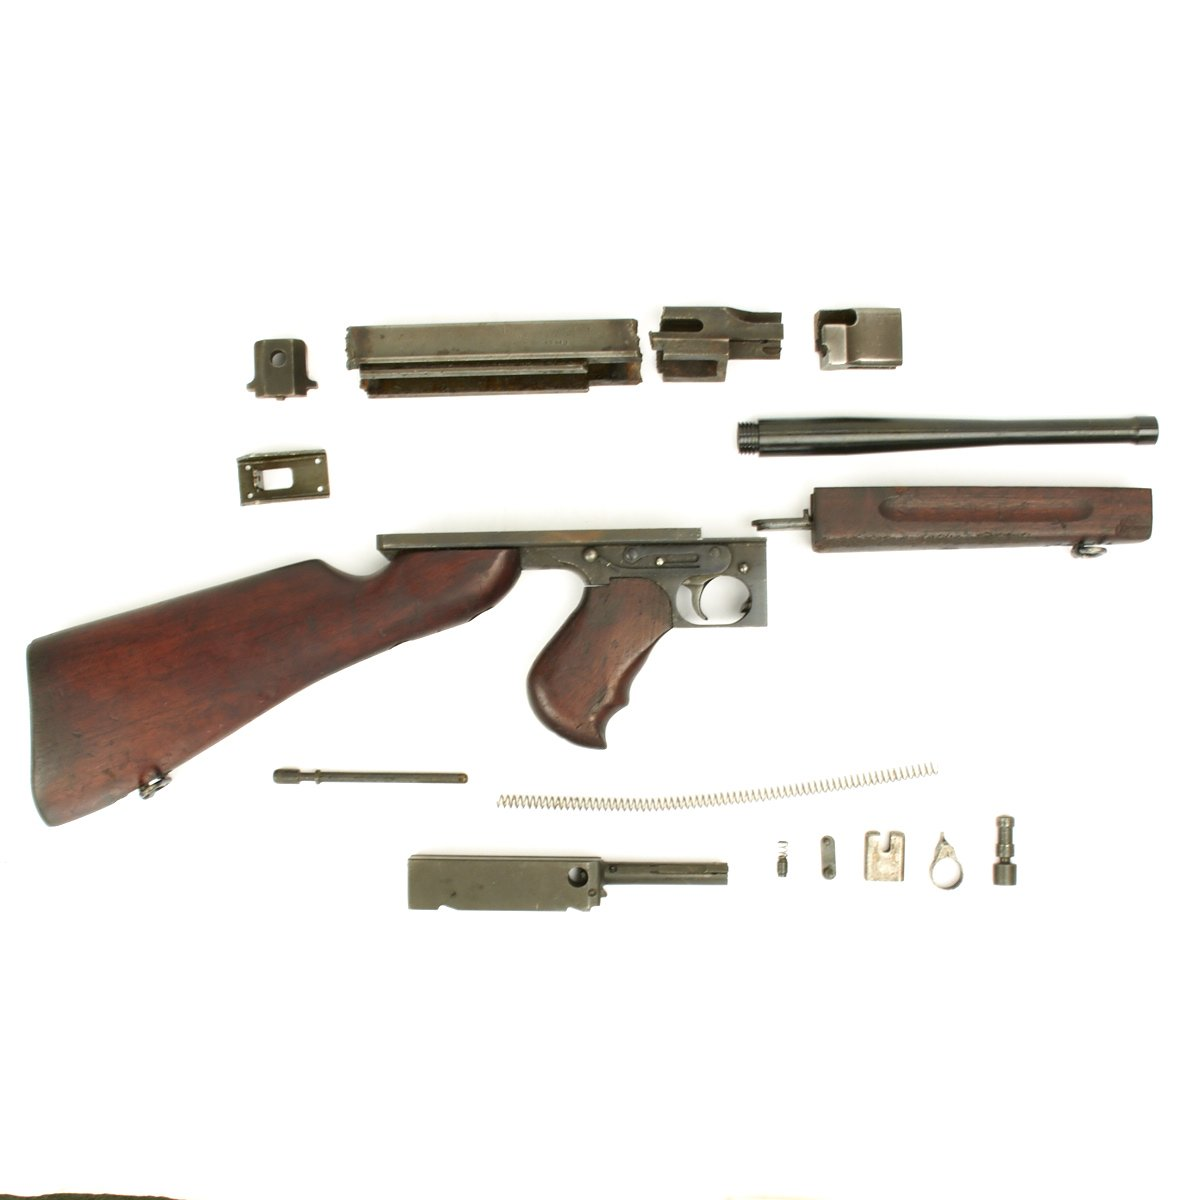 Original U S  WWII Thompson M1 SMG Parts Set with Barrel and